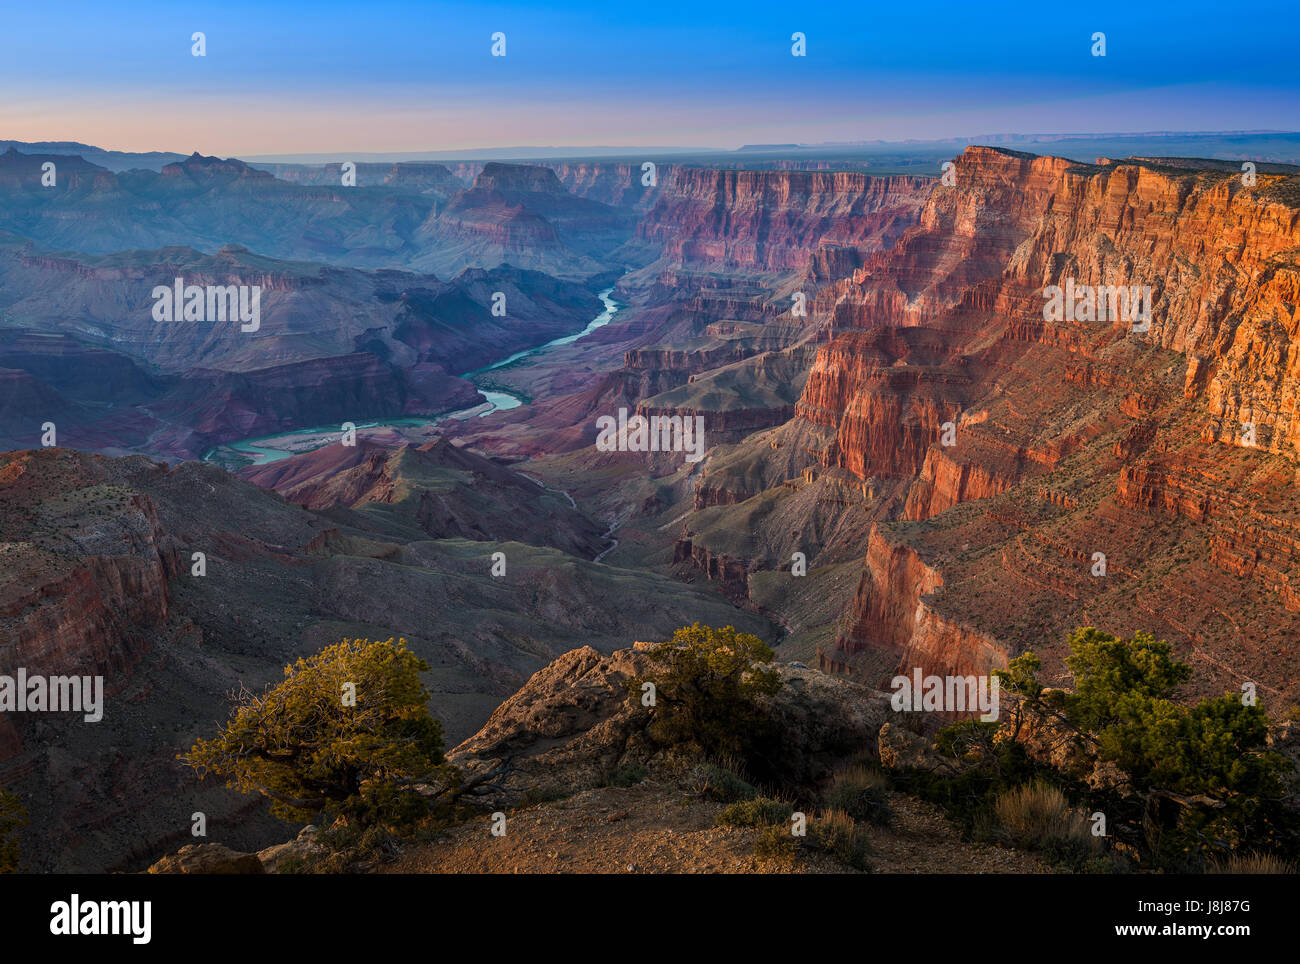 The world famous Grand Canyon National Park is a steep-sided canyon carved by the Colorado River in the U.S. state - Stock Image